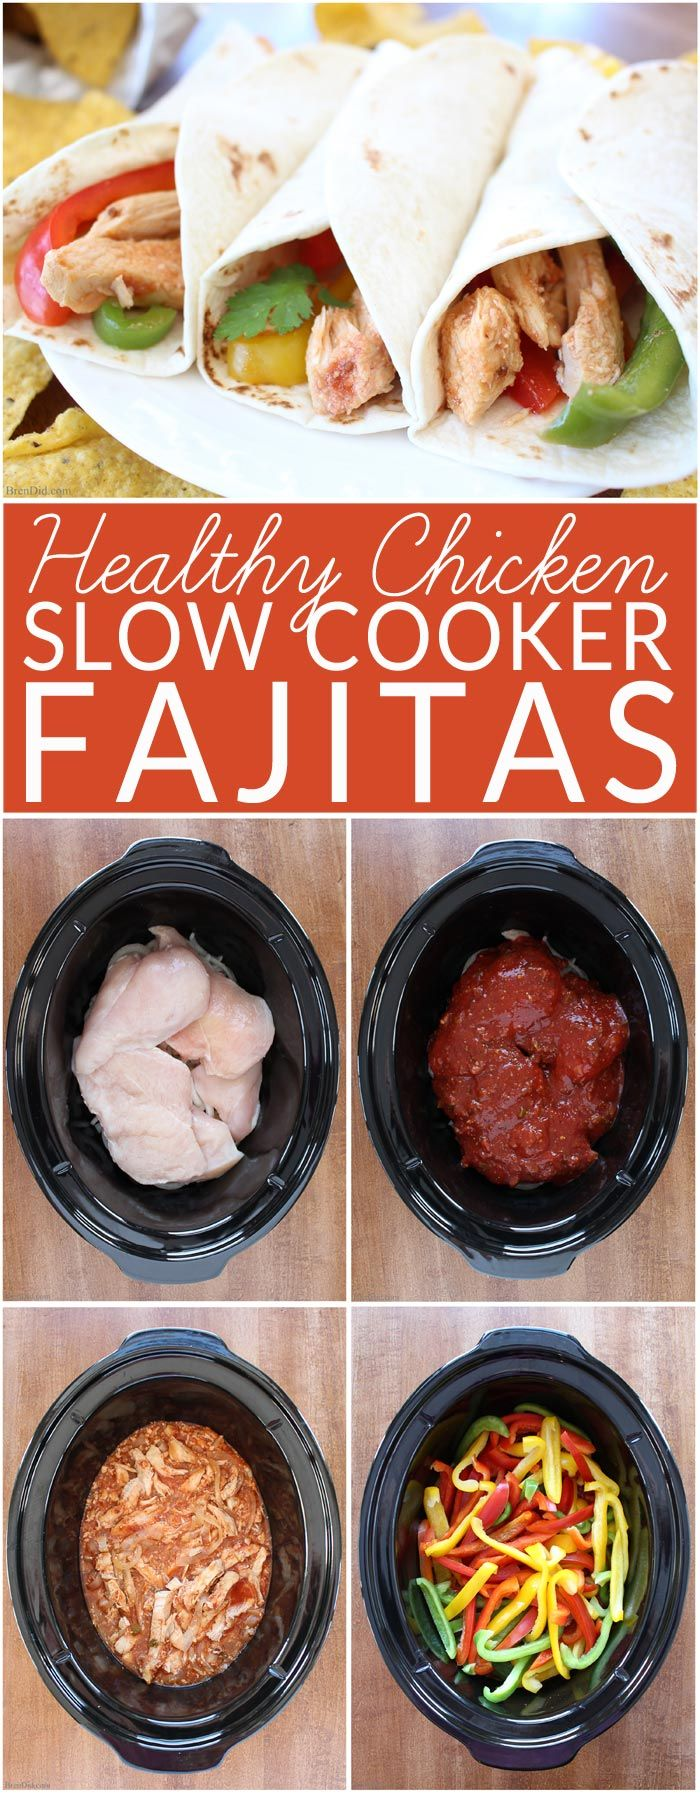 My new go to recipe for fajitas! Slow Cooker Chicken Fajitas - A quick, no-fuss way to make this healthy Mexican food favorite. These are easiest chicken fajitas you will ever make and they taste AMAZING! Great Chicken Fajita taste → onions, red, yellow and green peppers, perfectly seasoned chicken breast –→ made in one pan with no precooking. Simple yummy crock pot recipe!